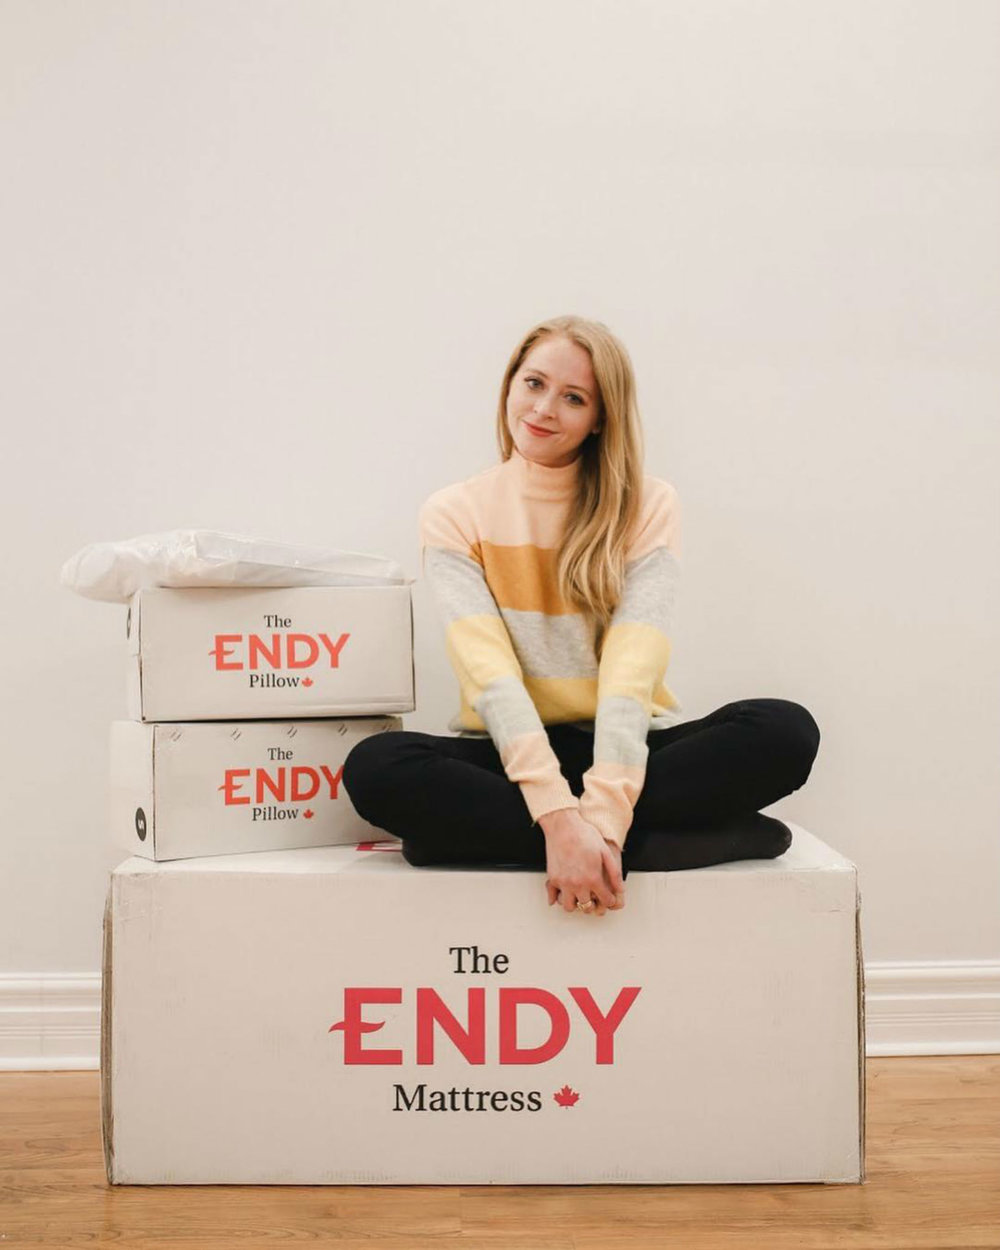 """Natalie Ast (@natalieast) - Ast is a Toronto-based lawyer who also maintains a blog dedicated to fashion, style, and travel.""""New city, new apartment, new bed. So excited to be partnering with @endy to get a better night's sleep! 😴First step was getting a new bed set up. I was so impressed that the #Endy mattress came shipped in a box I could lift on my own, and that it arrived by an eco-friendly bike courier! 🚴♂️ I also love that the company is all Canadian, manufactured and shipped locally. 🇨🇦"""""""